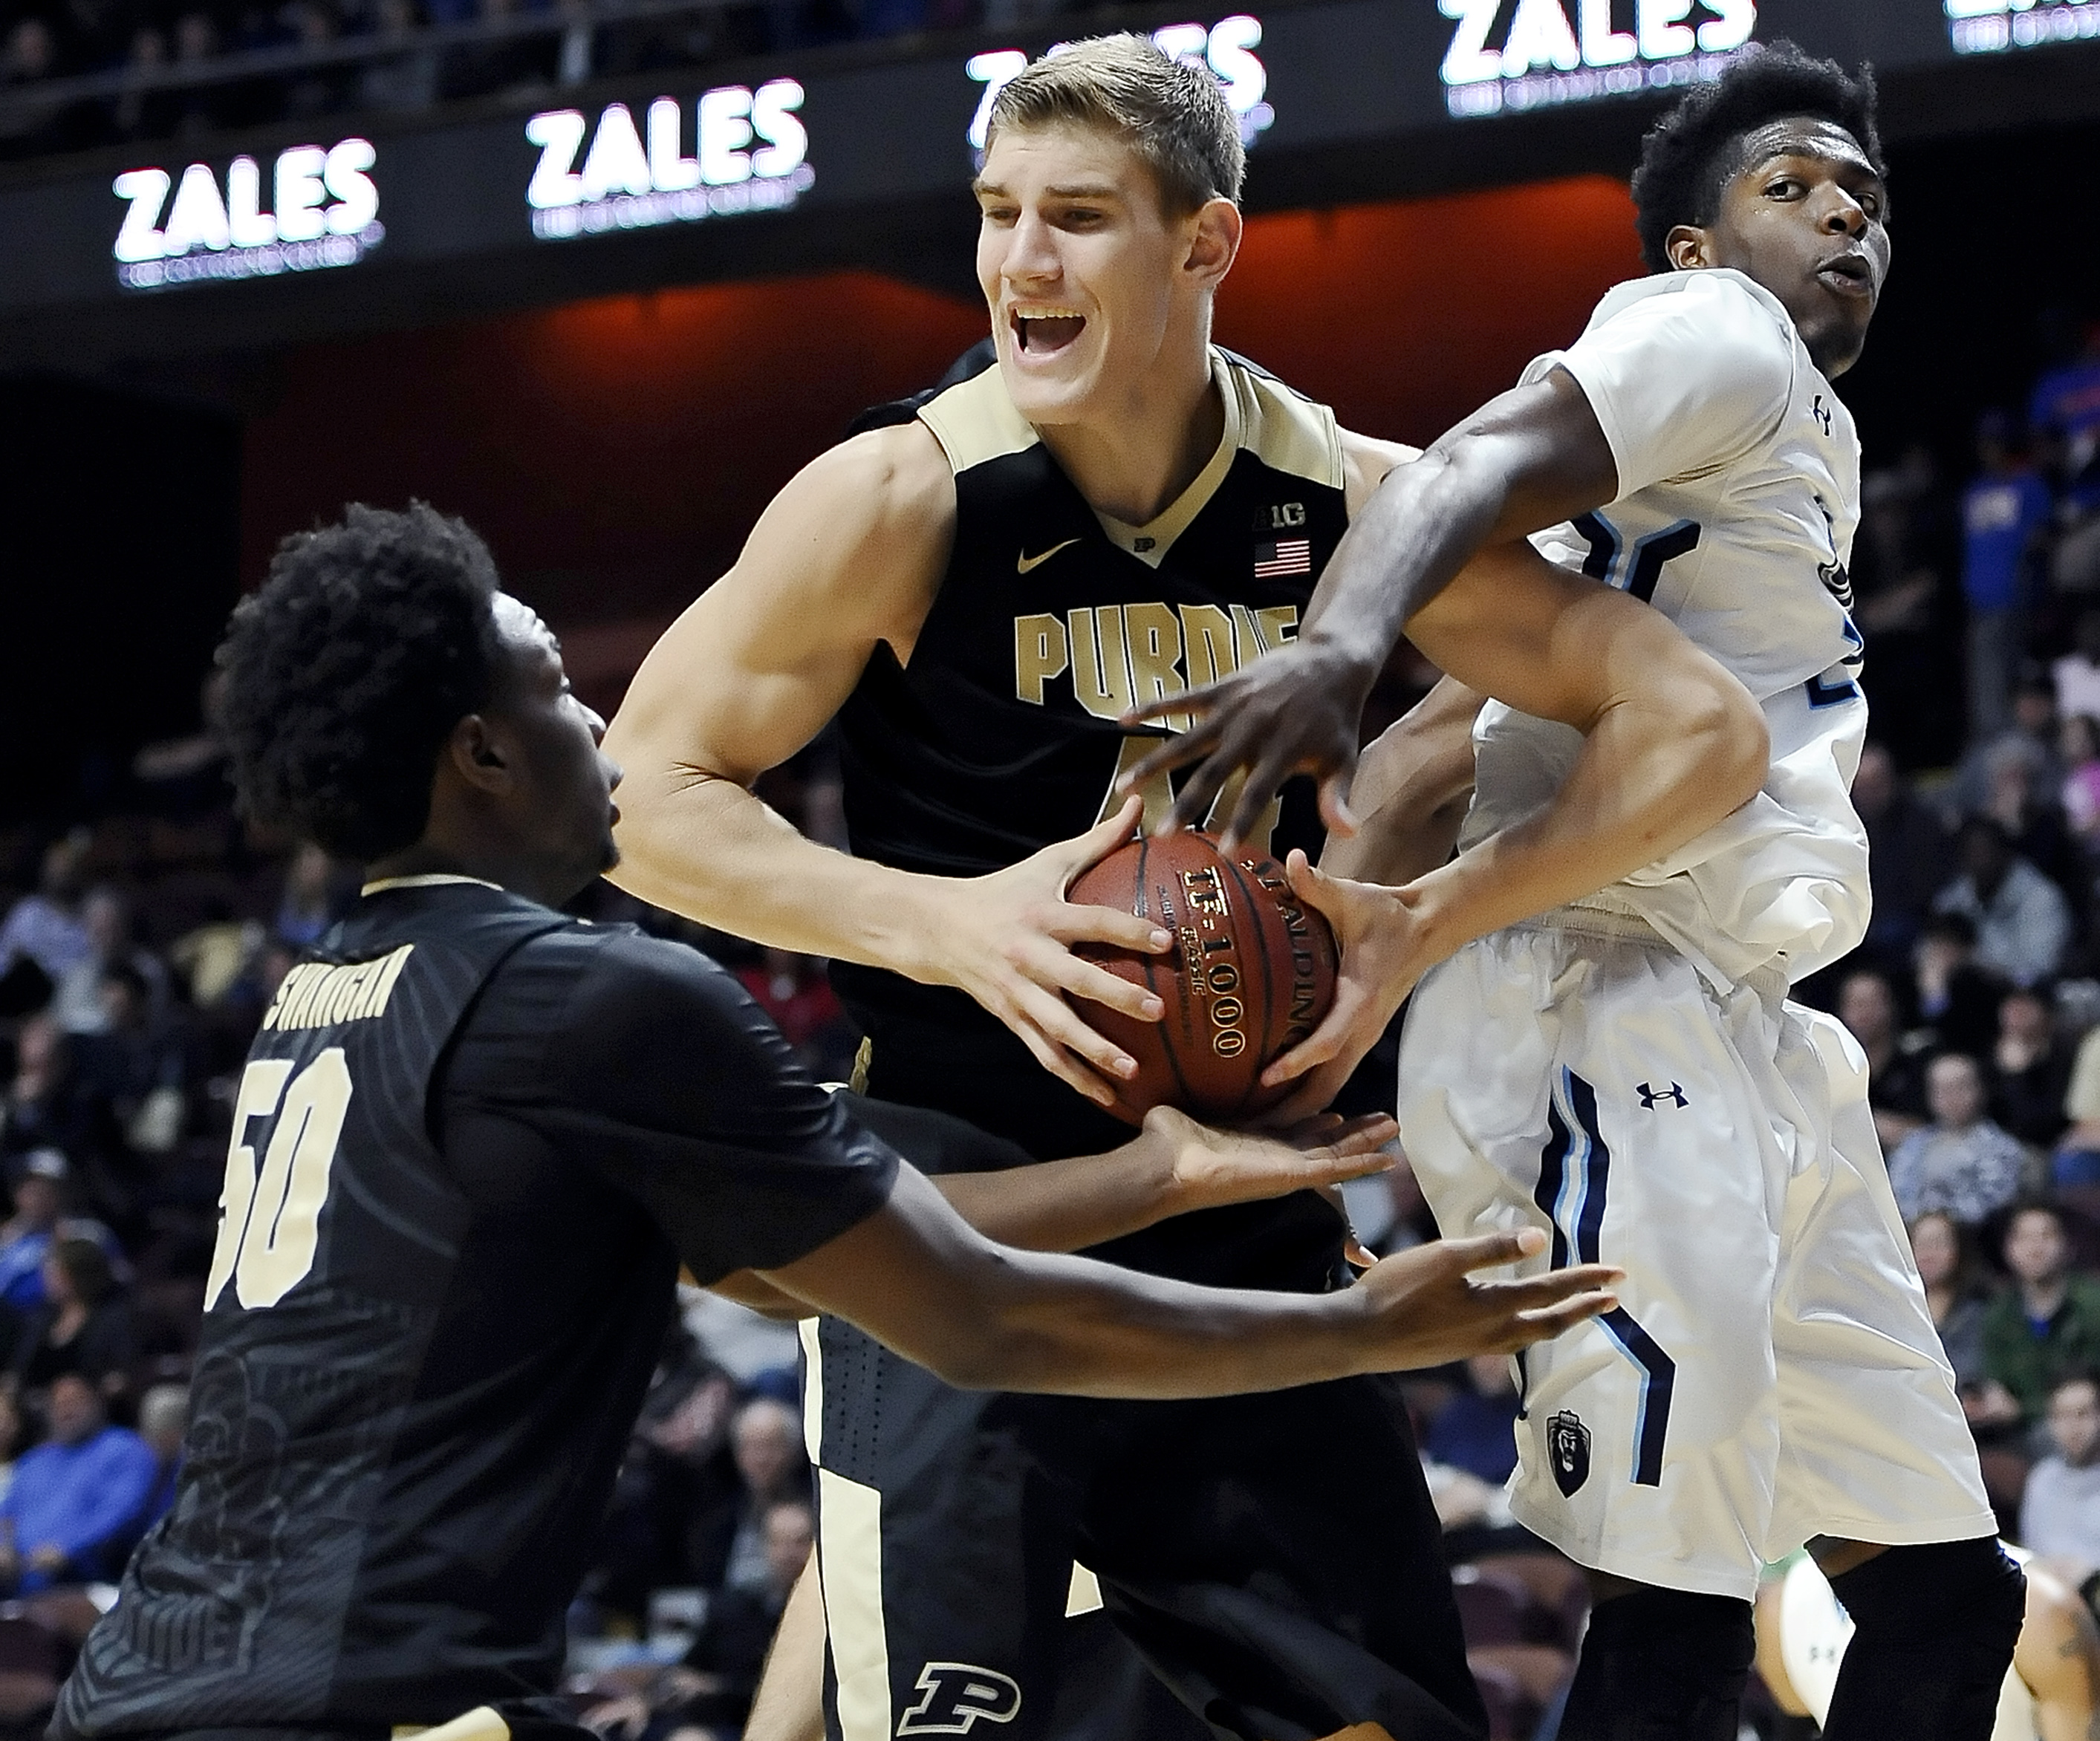 Purdue's Isaac Haas, center, looks to teammate Caleb Swanigan, left, as he brings down a rebound against Old Dominion's Denzell Taylor, right, during the second half of an NCAA college basketball game in the Hall of Fame Tip-Off tournament, Saturday, Nov.